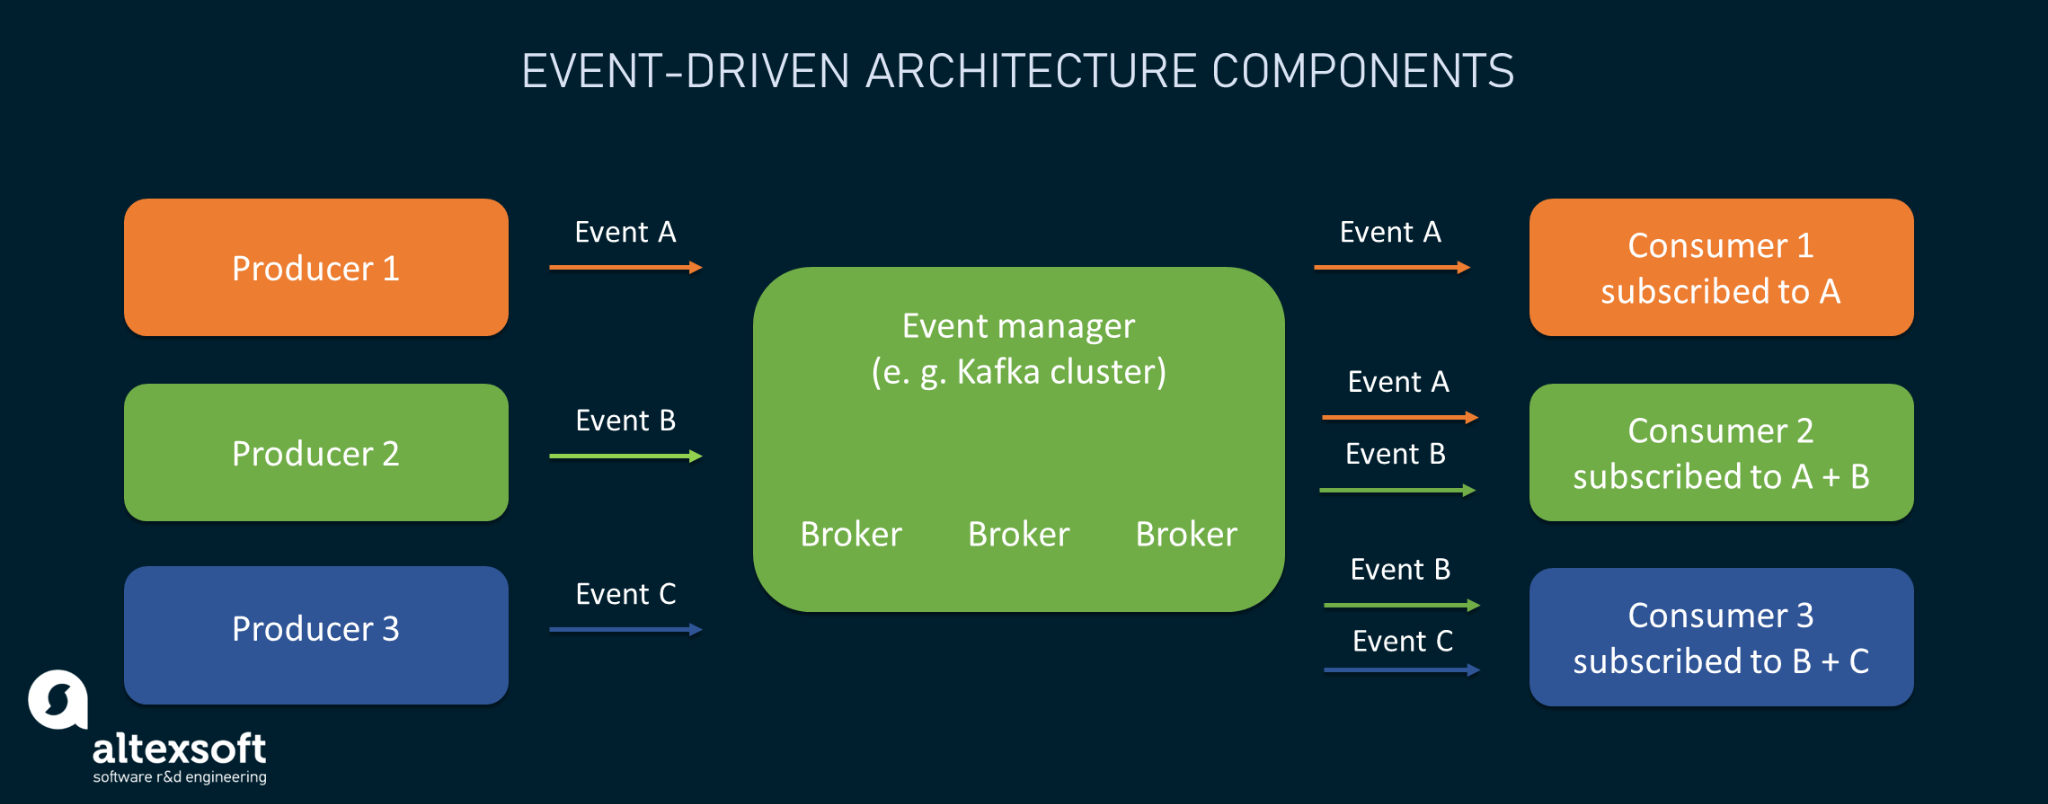 Key components of event-driven architectures